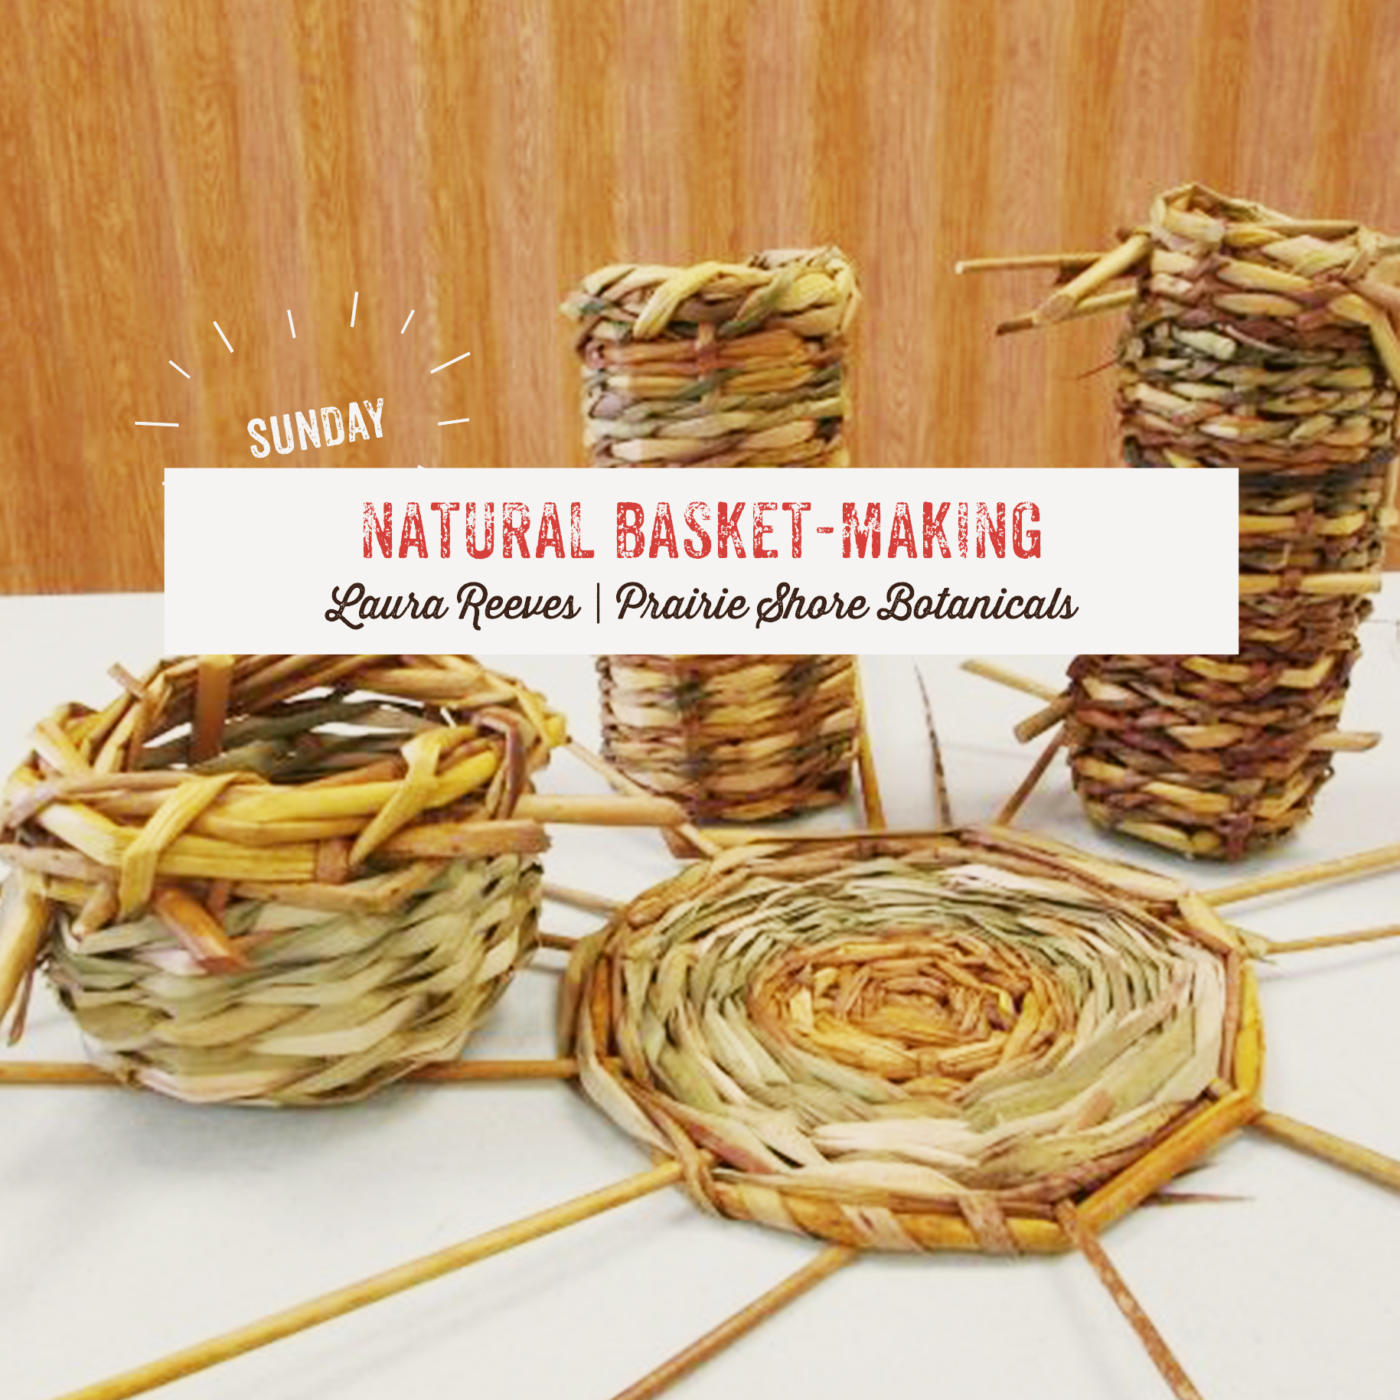 Natural Basket-making